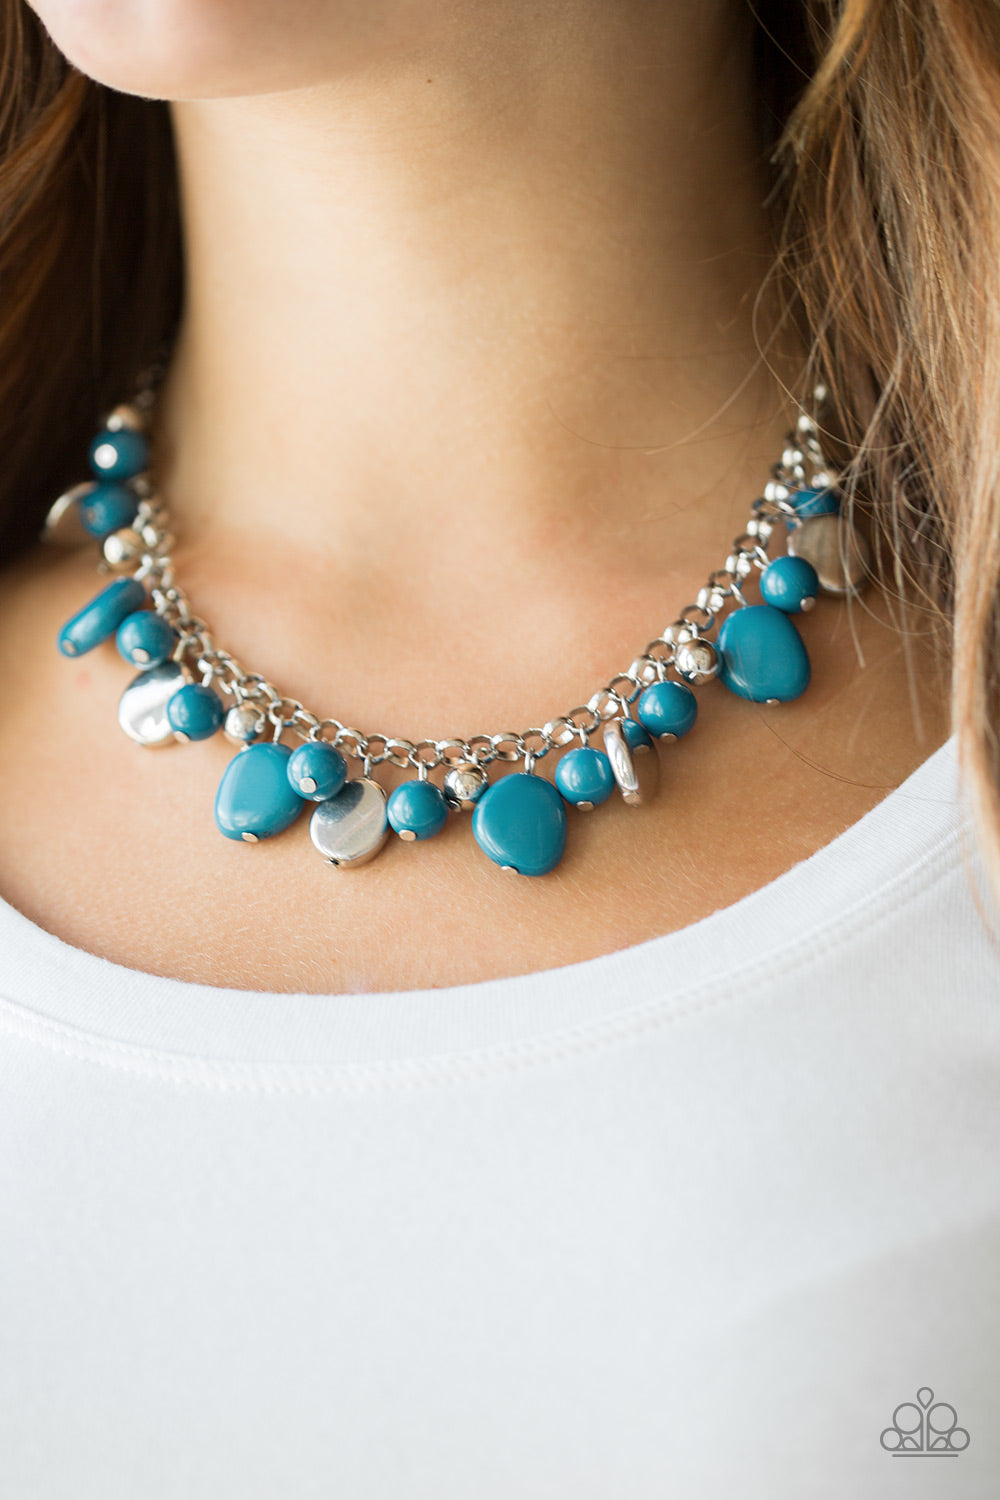 Paparazzi Accessories Flirtatiously Florida - Blue Necklaces